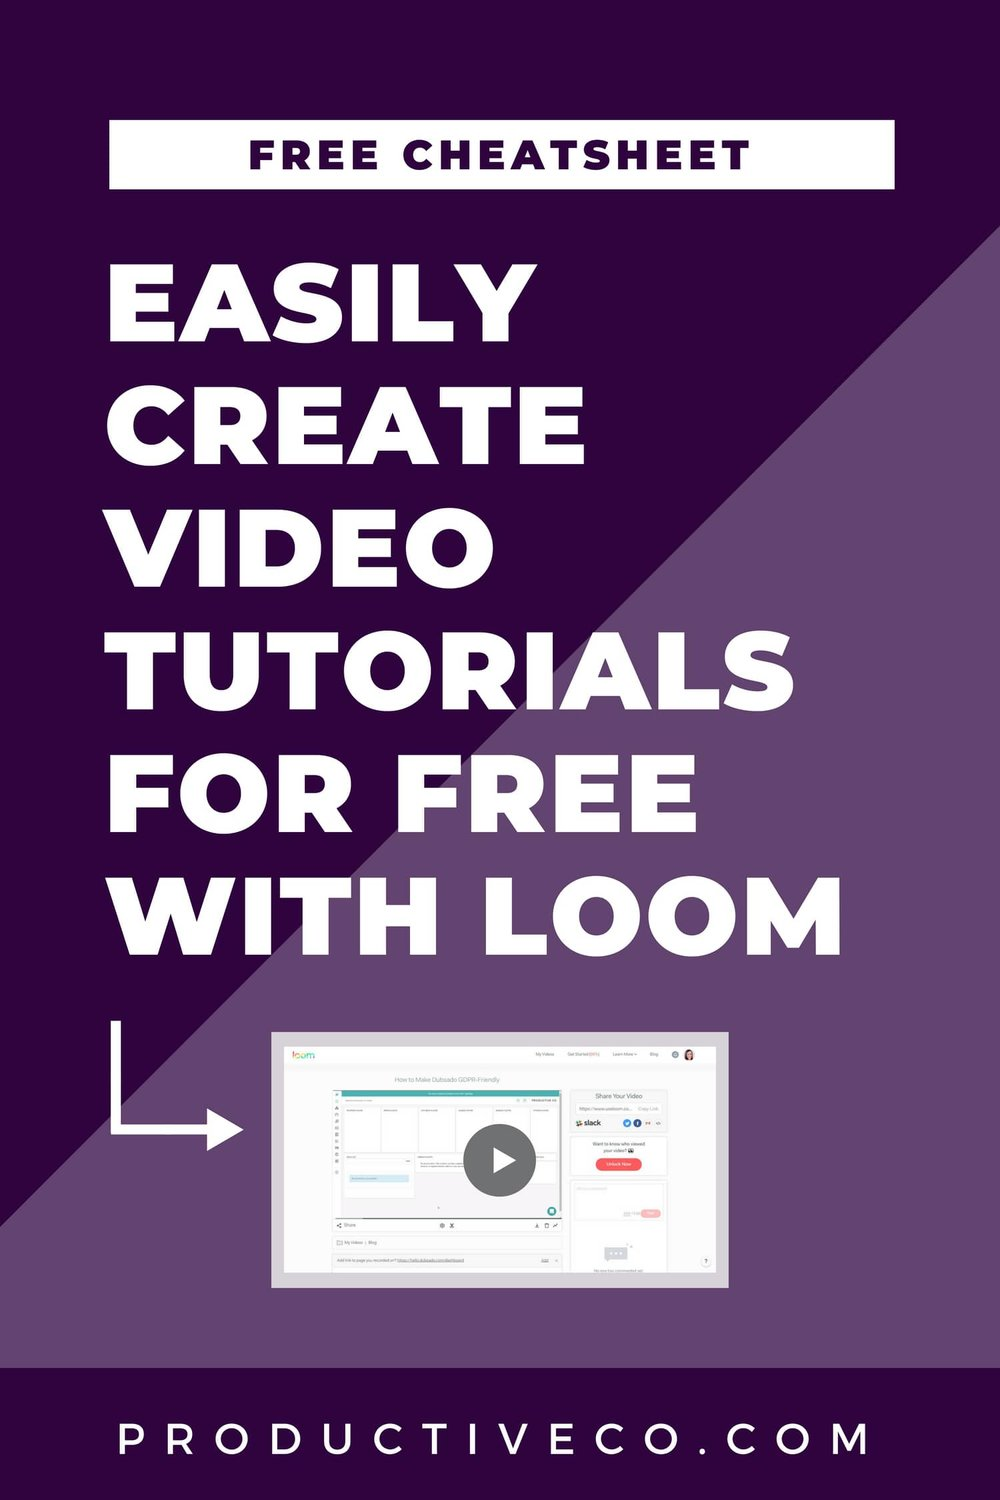 Learn how to create video tutorials for free using Loom. You can record yourself or record your screen, edit, share, and embed the videos.